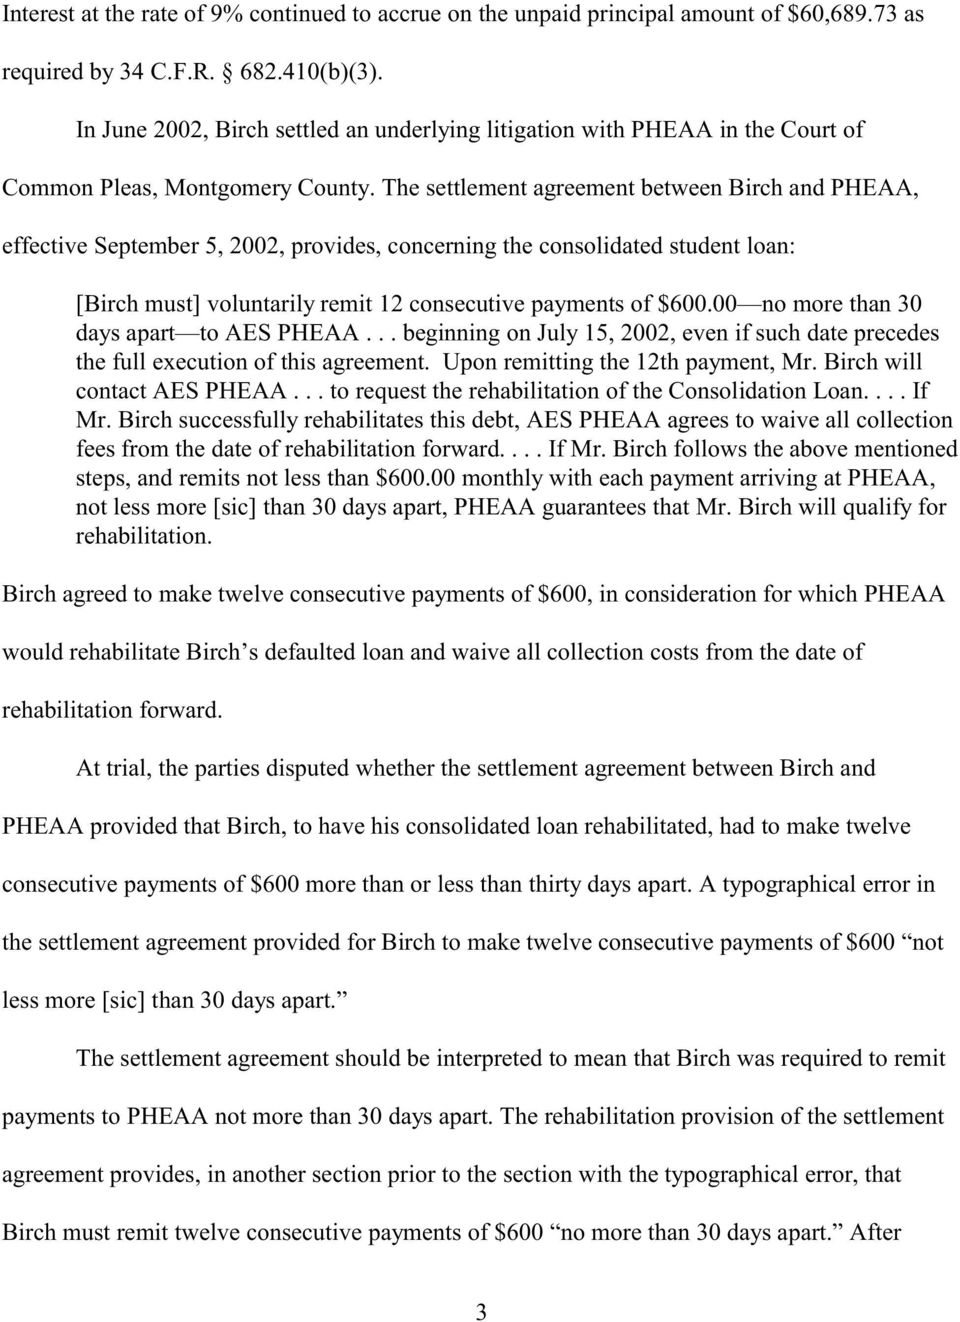 The settlement agreement between Birch and PHEAA, effective September 5, 2002, provides, concerning the consolidated student loan [Birch must] voluntarily remit 12 consecutive payments of $600.